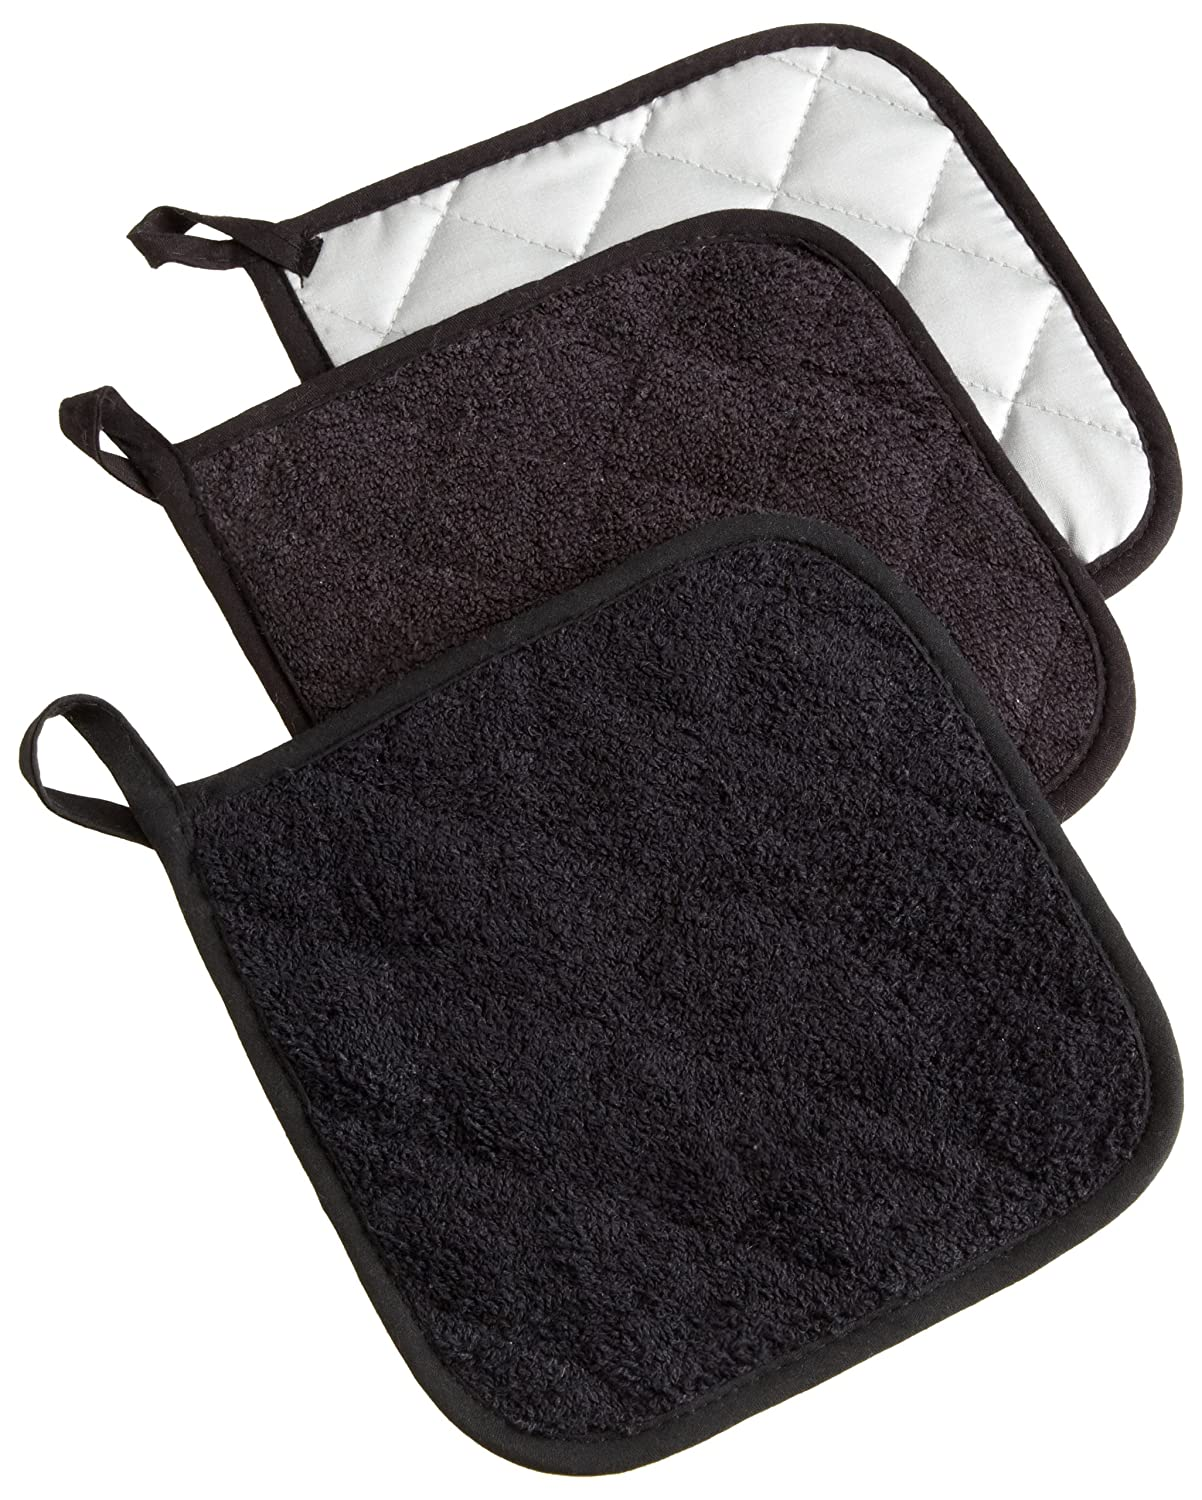 "DII 100% Cotton, Machine Washable, Heat Resistant, Quilted Terry, Potholder for Cooking and Baking, 7 x 7"", Set of 3, Black"